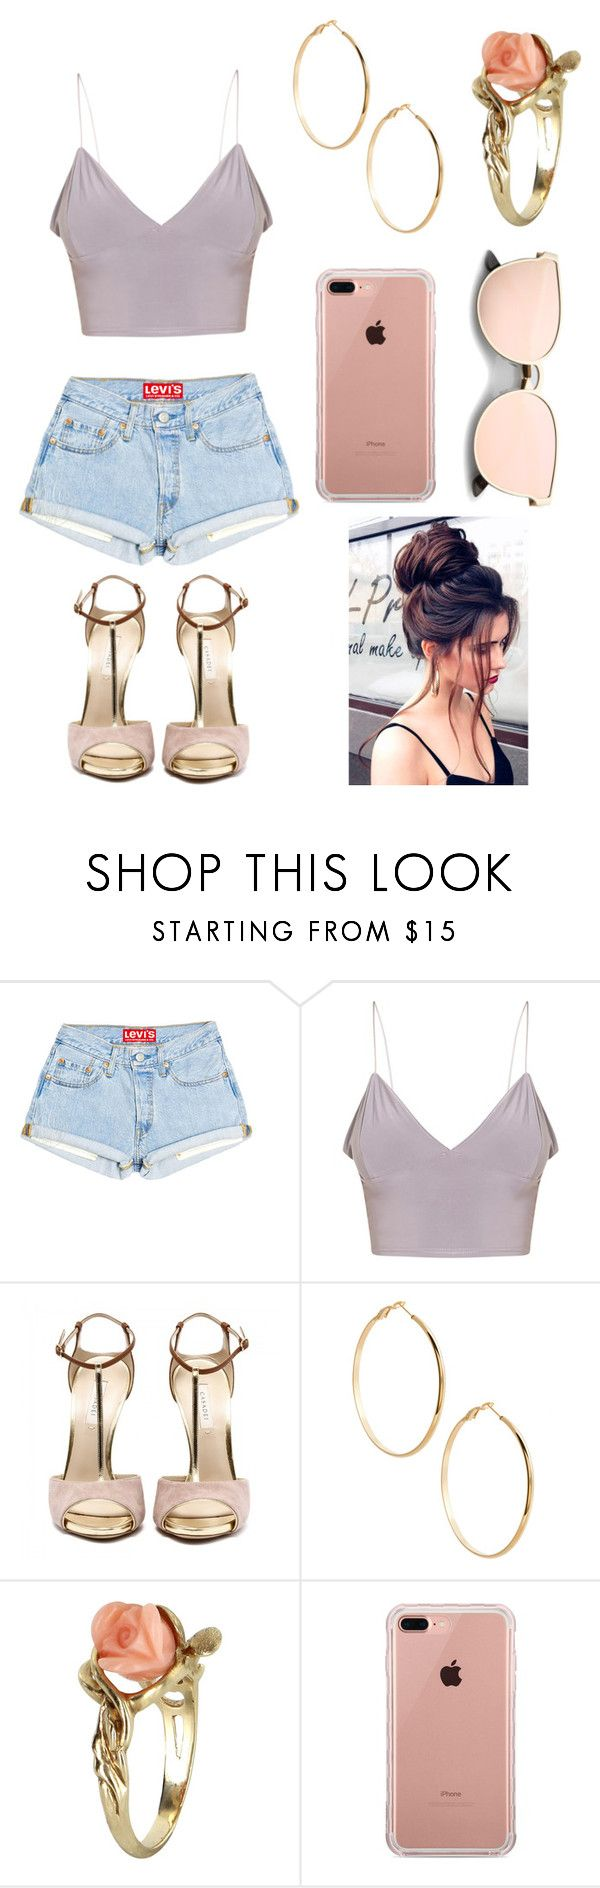 """""""Untitled #1"""" by liviacordeiroo ❤ liked on Polyvore featuring GUESS by Marciano, Vintage and Belkin"""